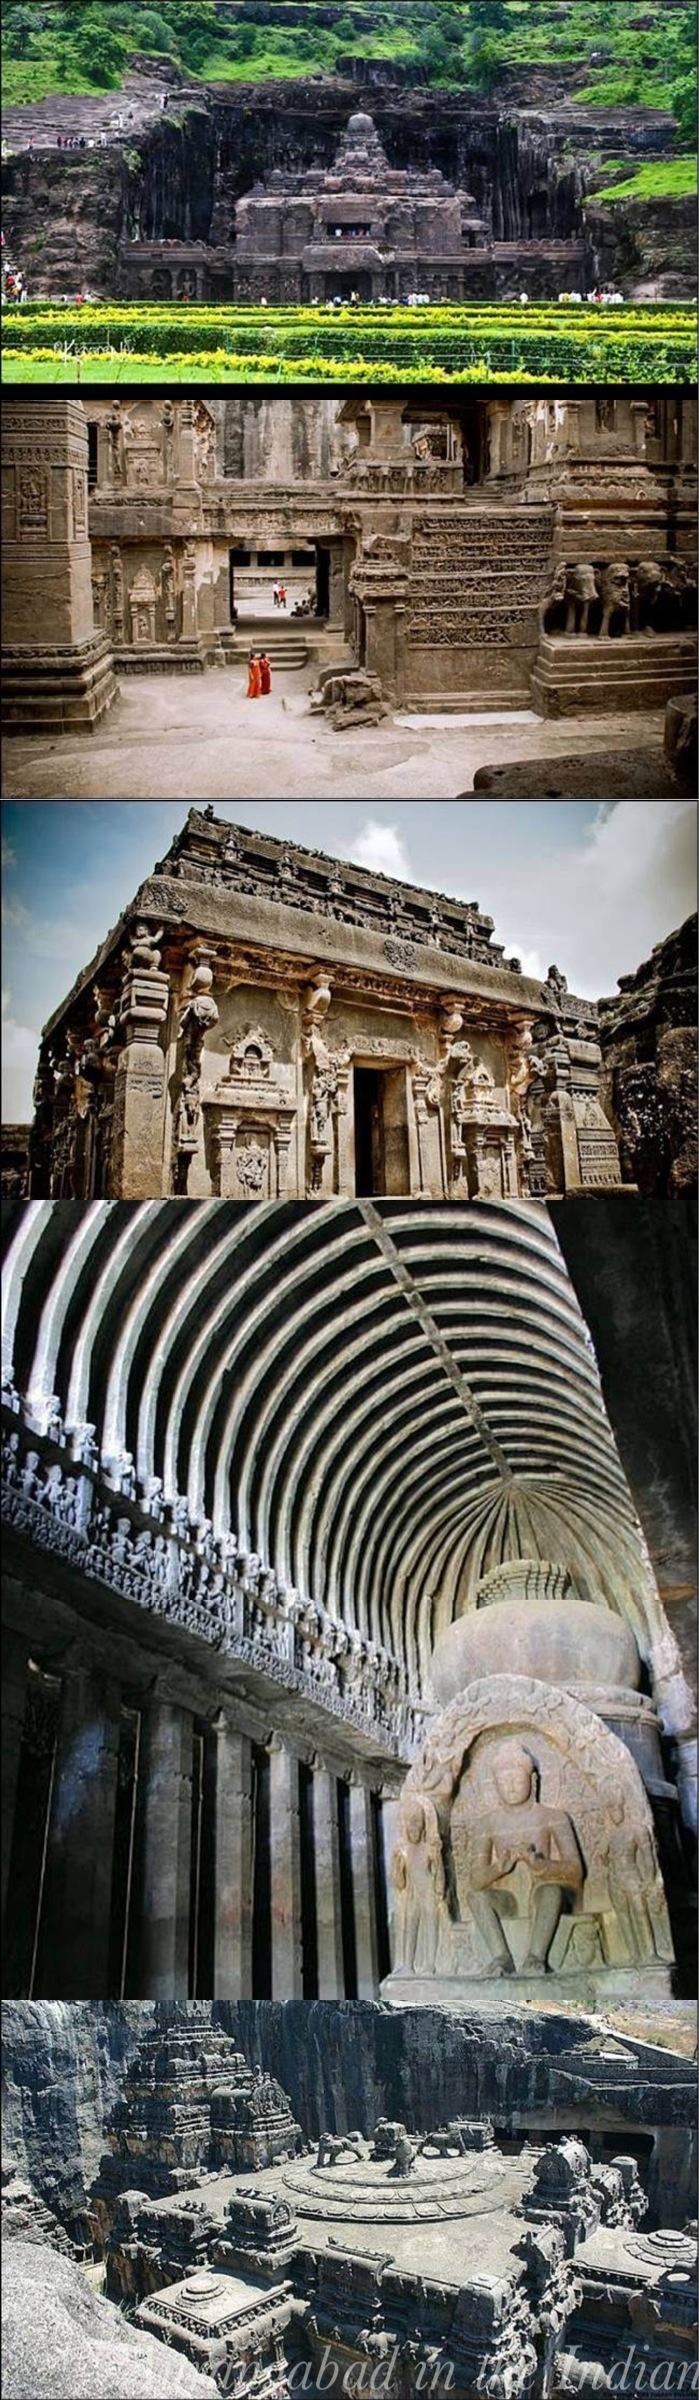 Ellora  also known as Ellooru, is an archaeological site, 29 km  North-West of the city of Aurangabad in the Indian state of Maharashtra built by the Rashtrakuta dynasty. Well known for its monumental caves, Ellora is a World Heritage Site. Ellora represents the epitome of Indian rock-cut architecture